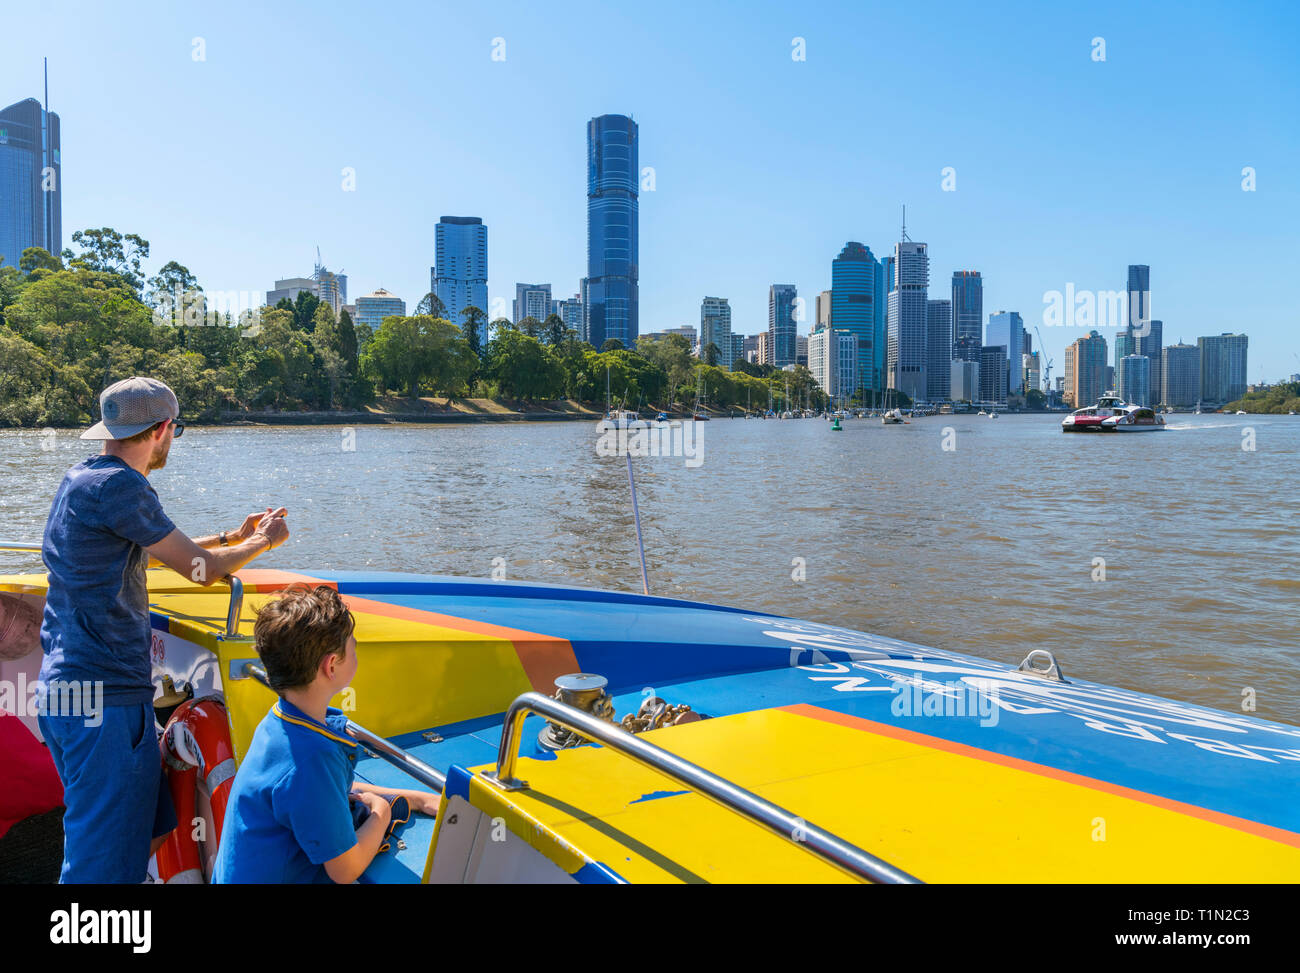 The downtown skyline from a CityCat ferry on the Brisbane River, Brisbane, Queensland, Australia - Stock Image